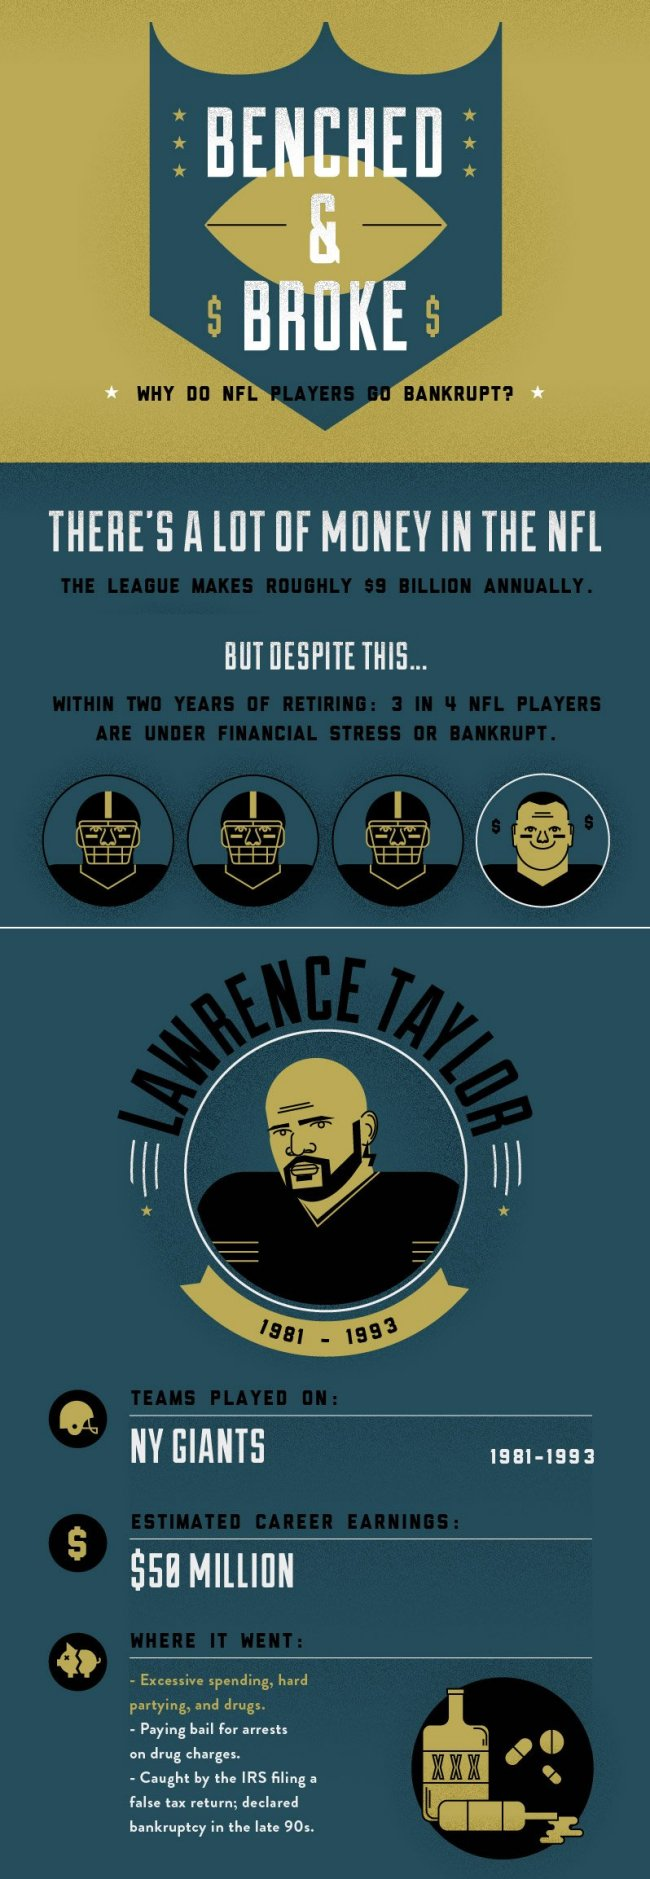 Football players and bankruptcy